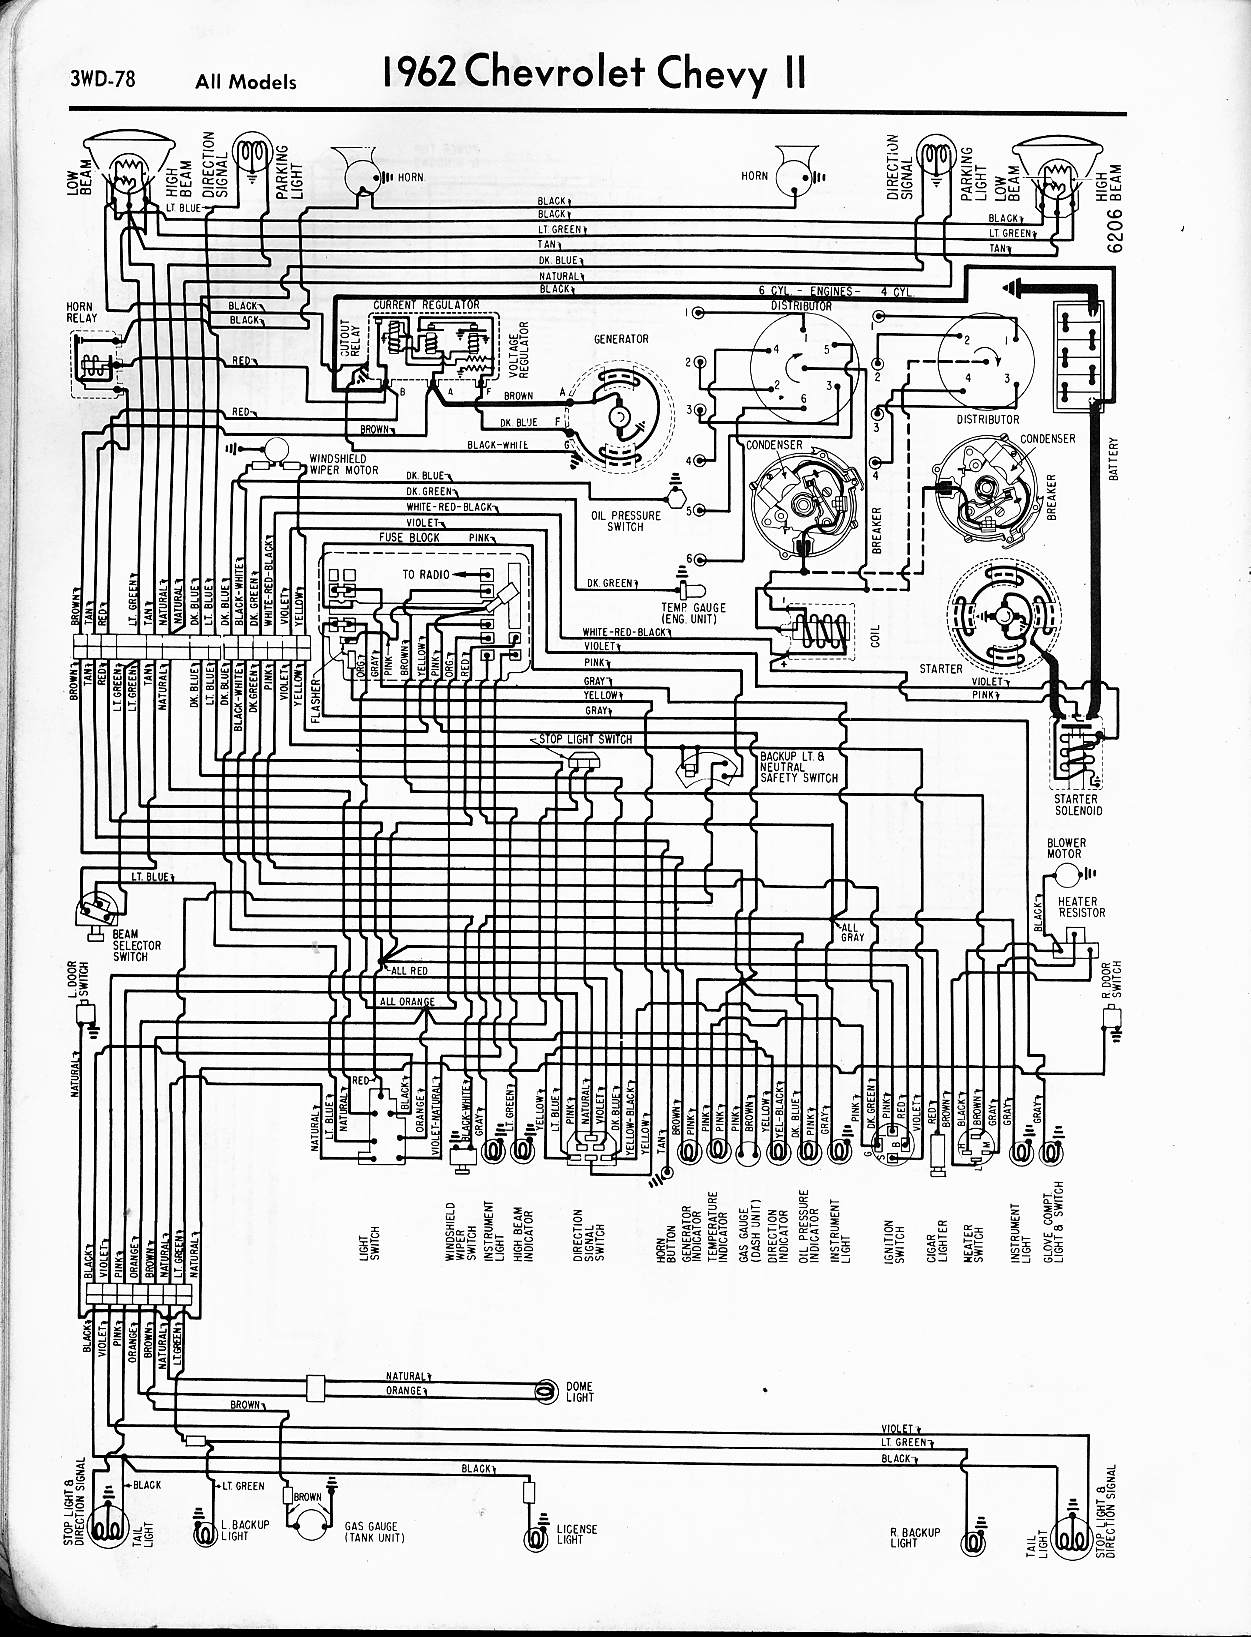 MWireChev62_3WD 078 1963 c10 pickup wiring diagram pdf chevy wiring diagrams \u2022 free 67 Chevy 2 Nova at gsmx.co